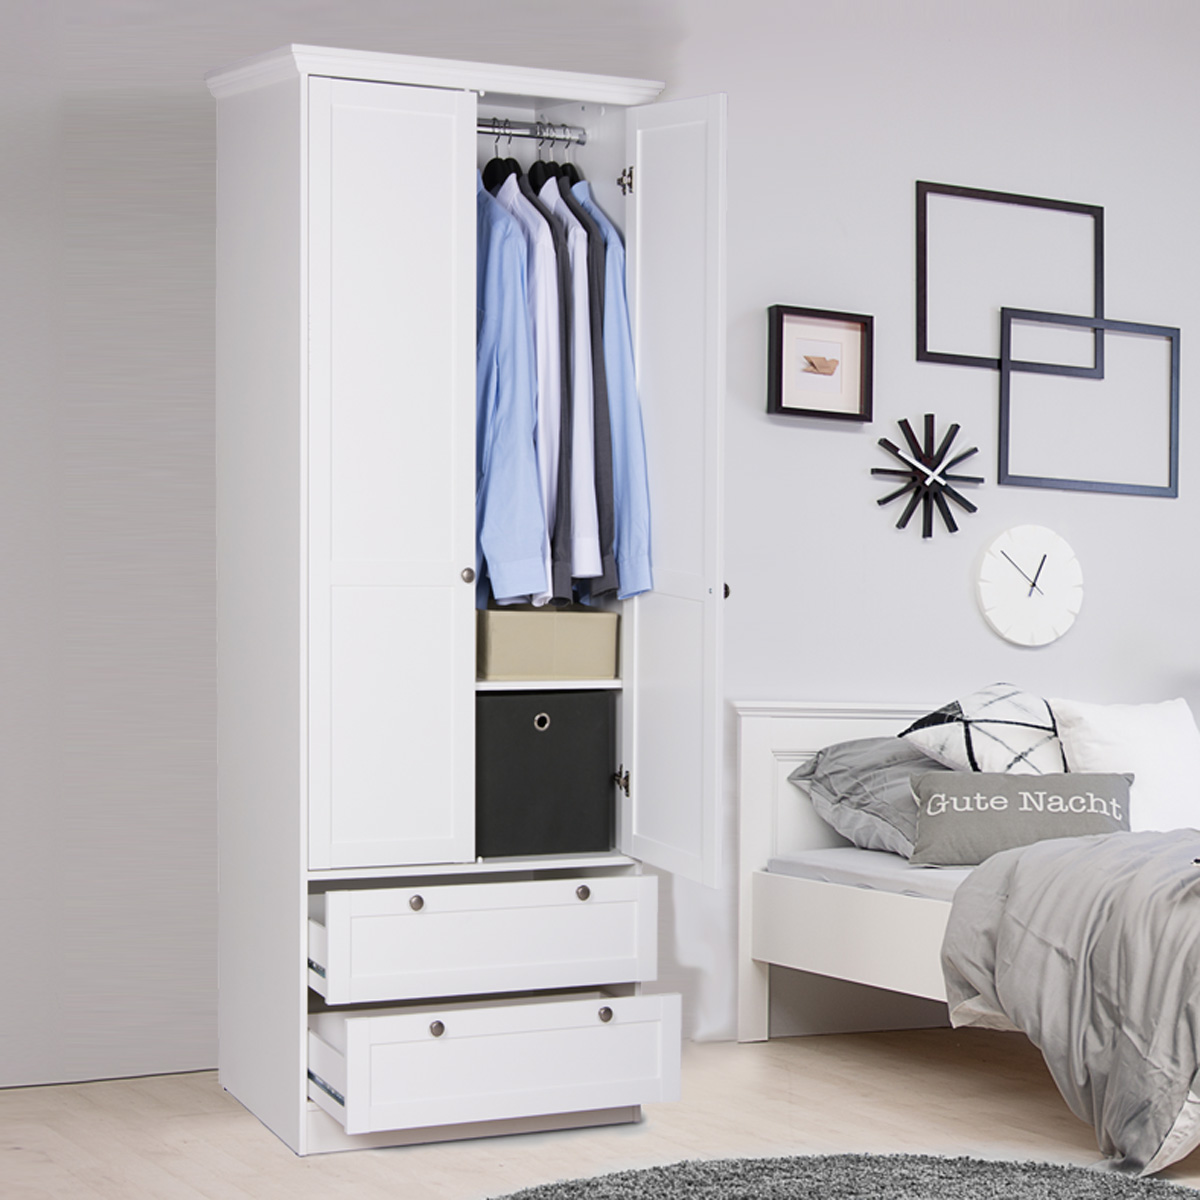 kleiderschrank landwood landhausstil schrank wei 2 t ren 2 schubk sten ebay. Black Bedroom Furniture Sets. Home Design Ideas